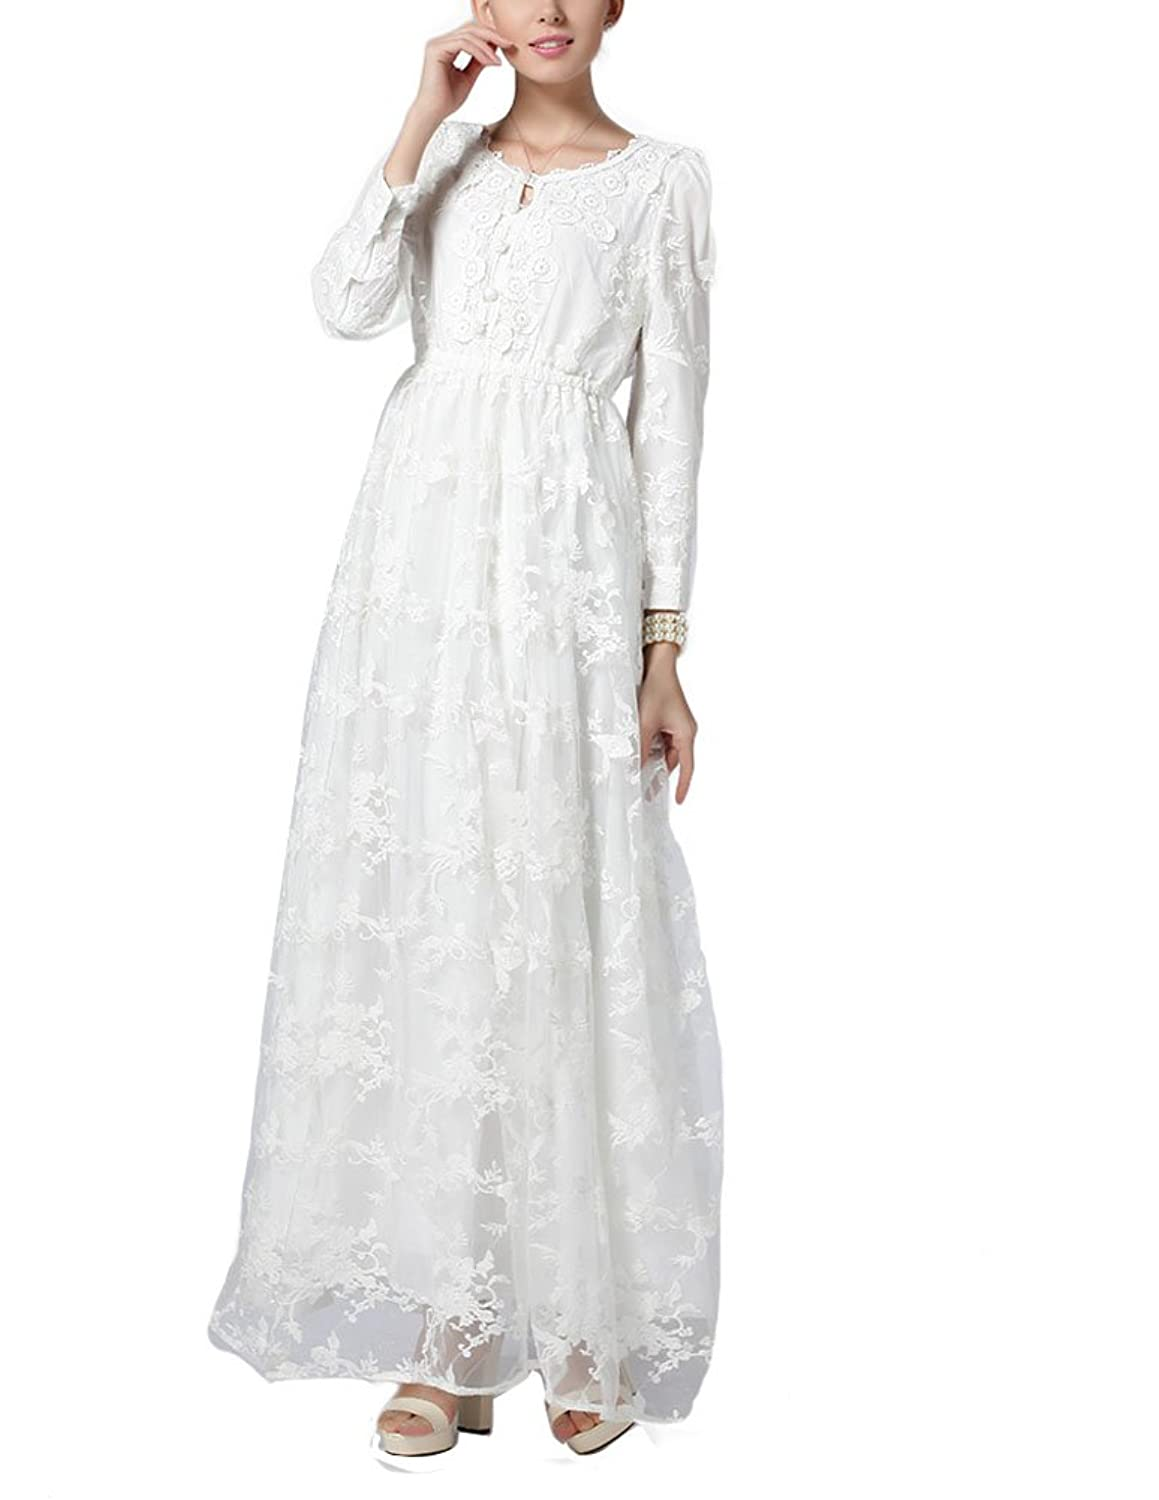 Three Layers Crochet Embroidery Craft Lace Wedding Dress LYQ0156 $49.99 AT vintagedancer.com